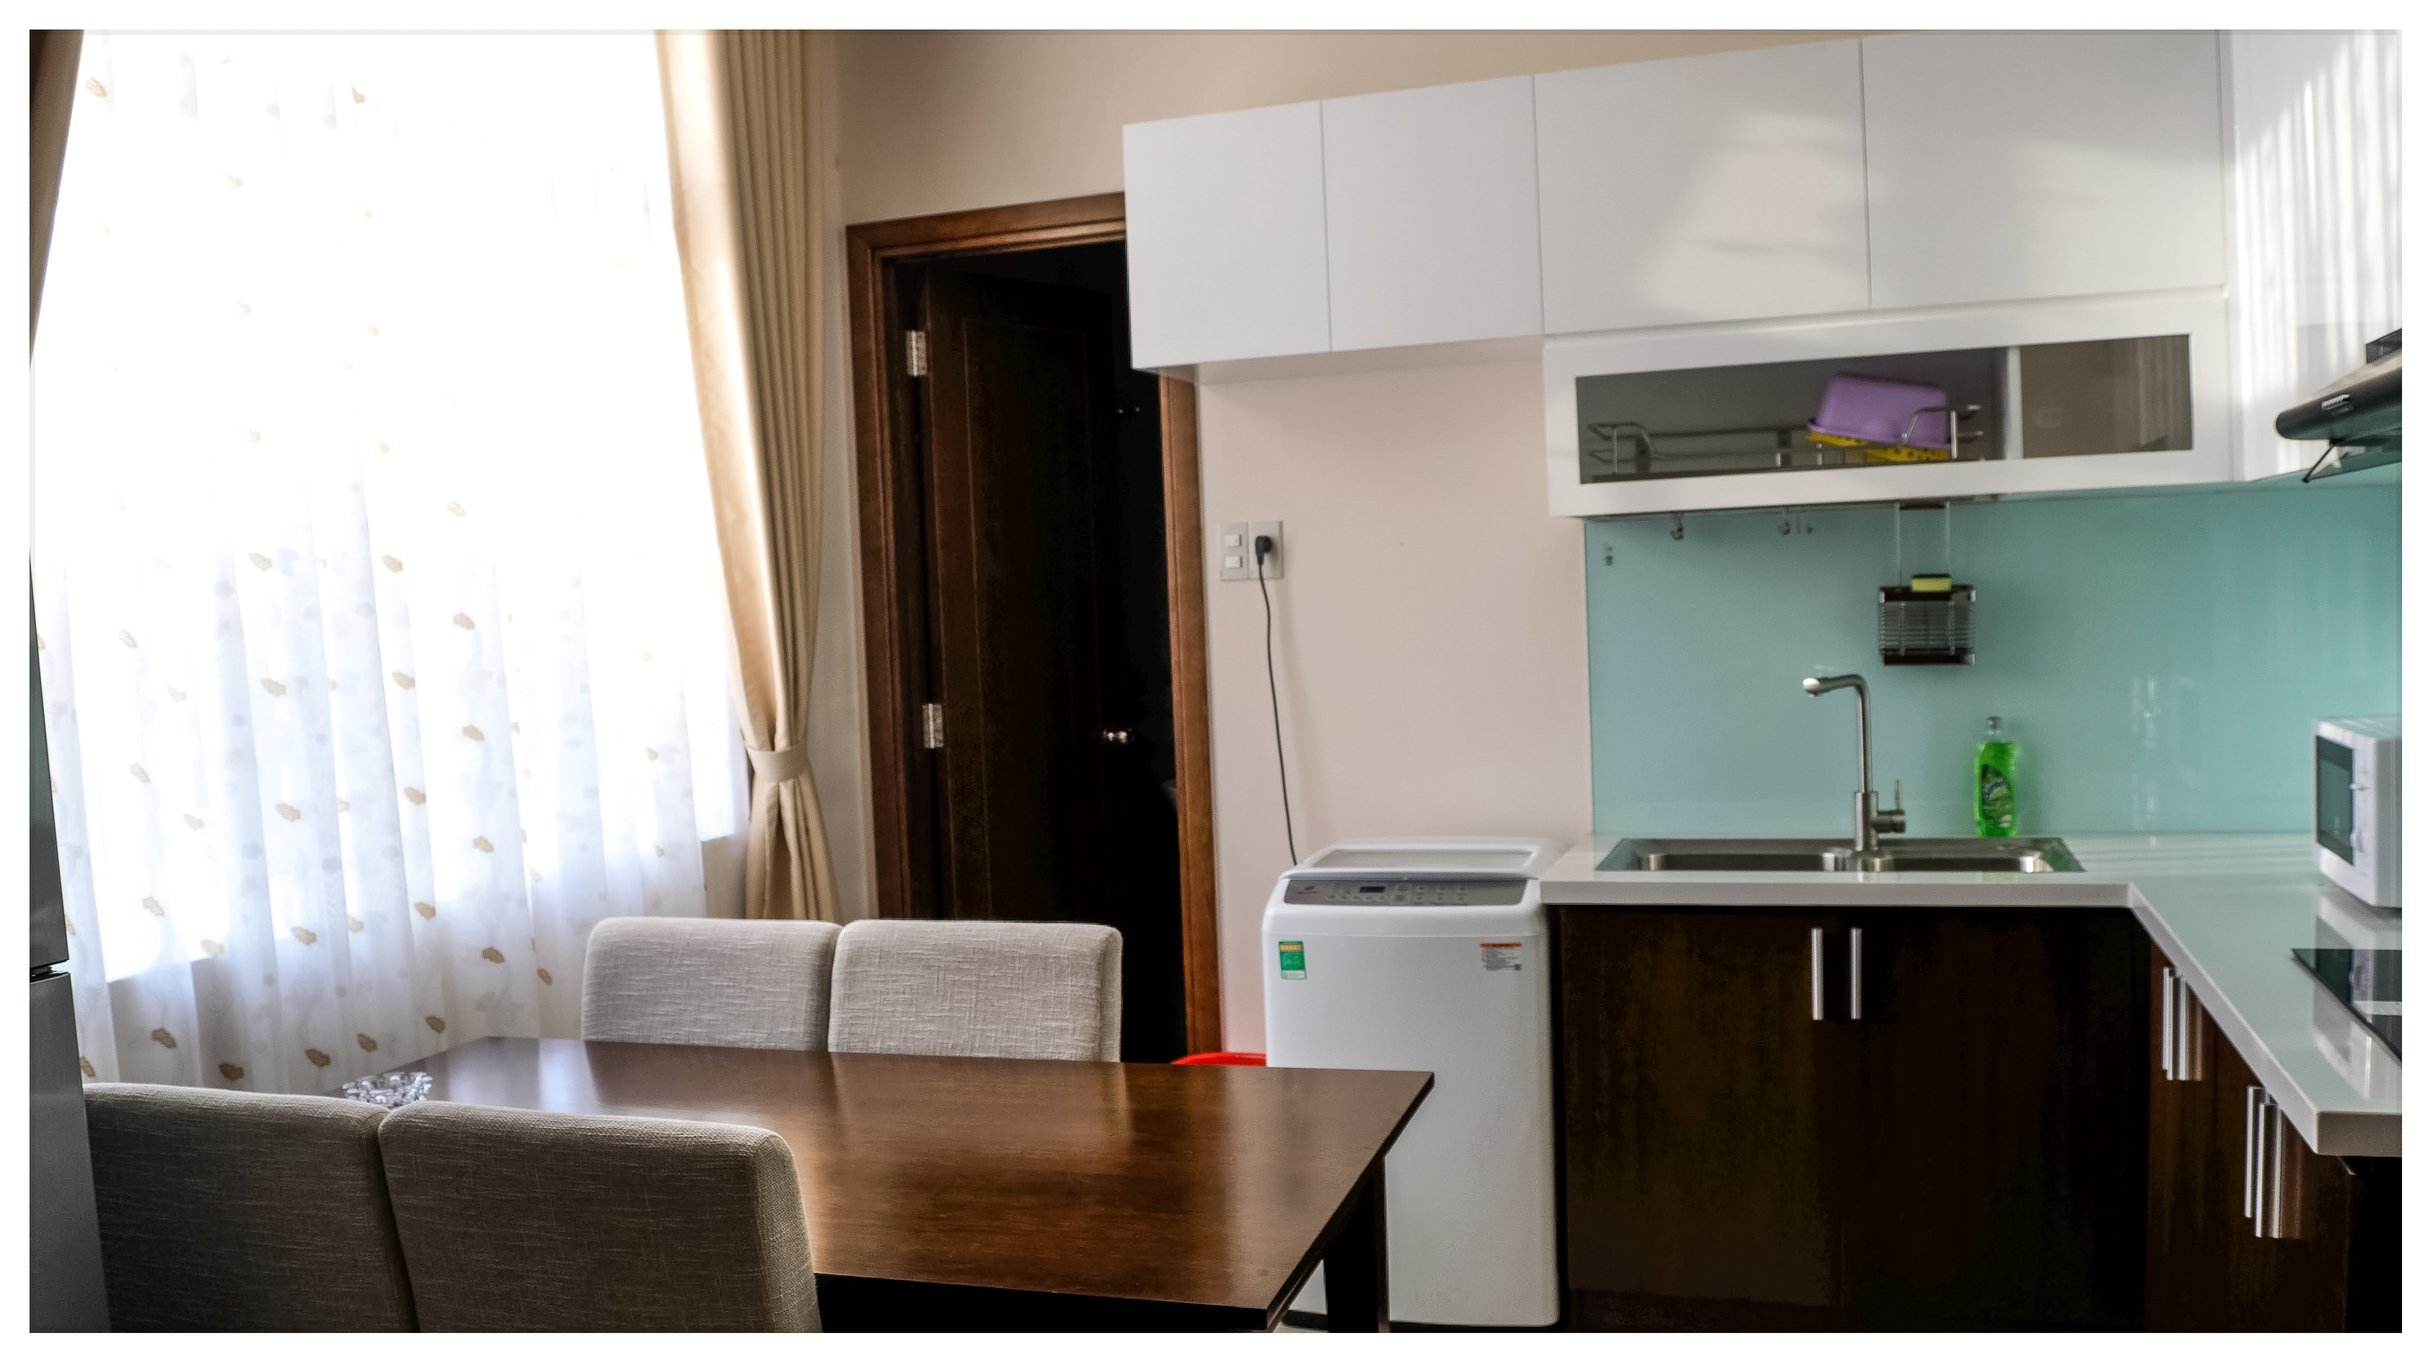 Two-bedroom apartment in My An area – DNA1